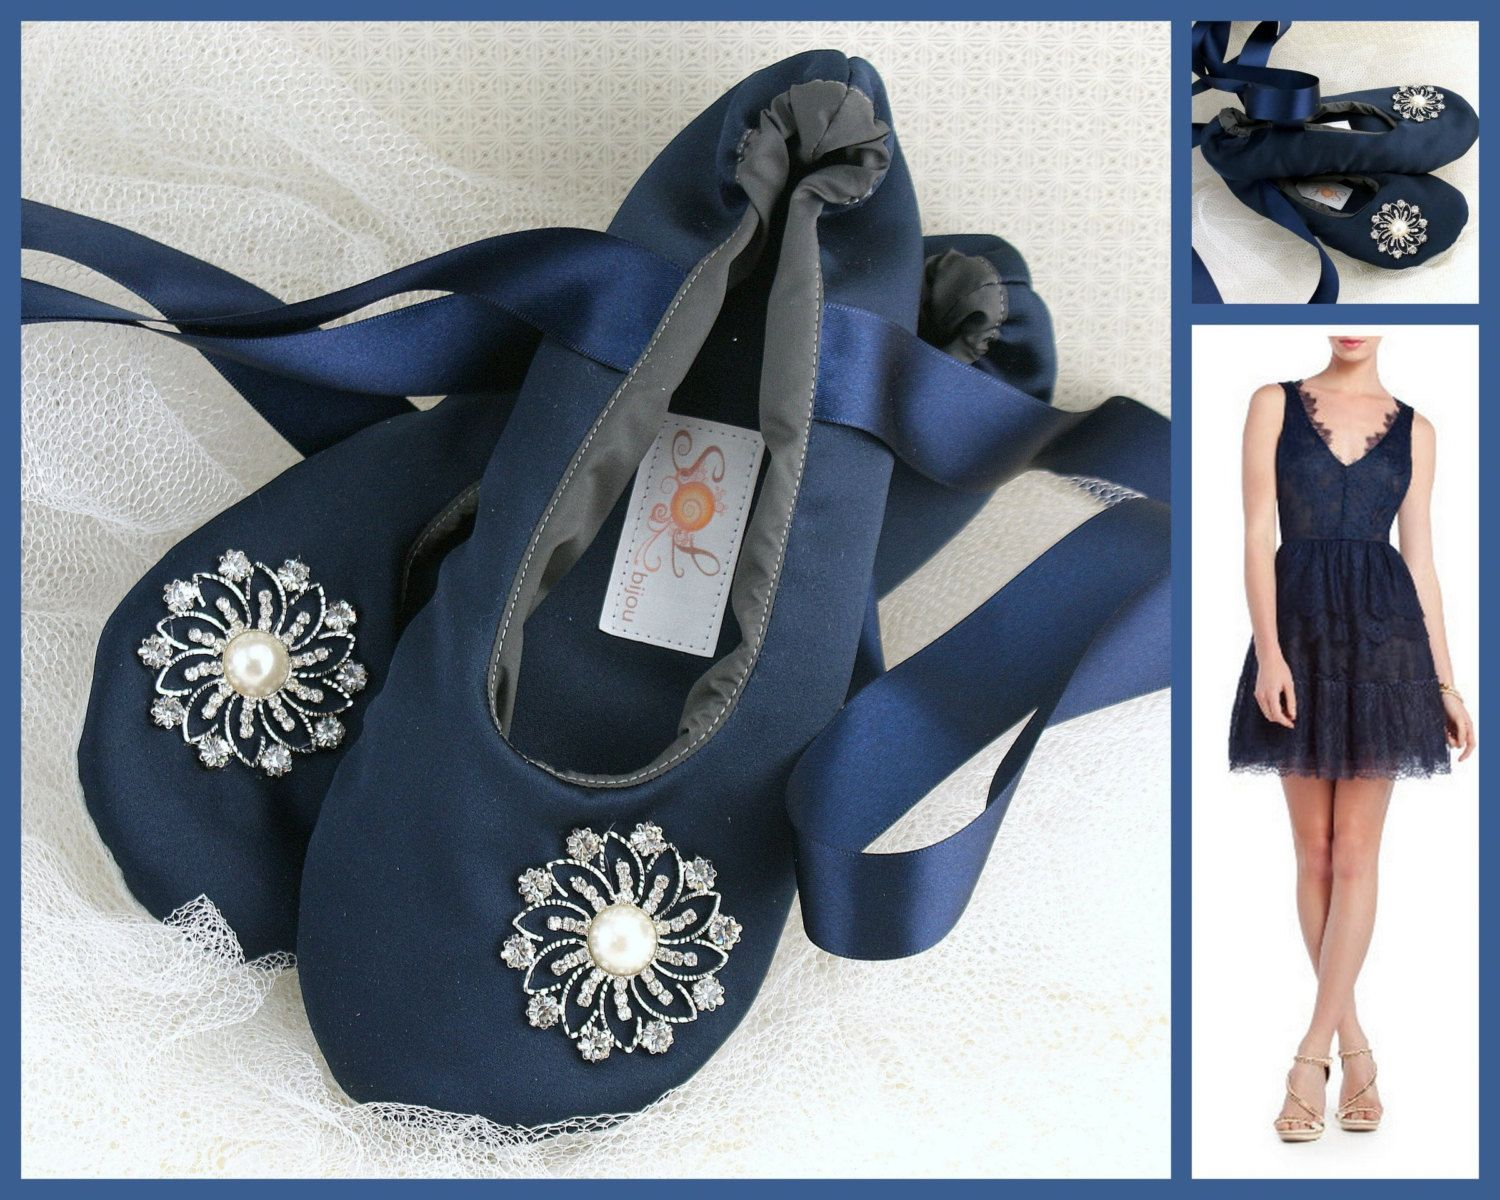 Bridal flats ballerina slippers in navy blue satin with crystal and